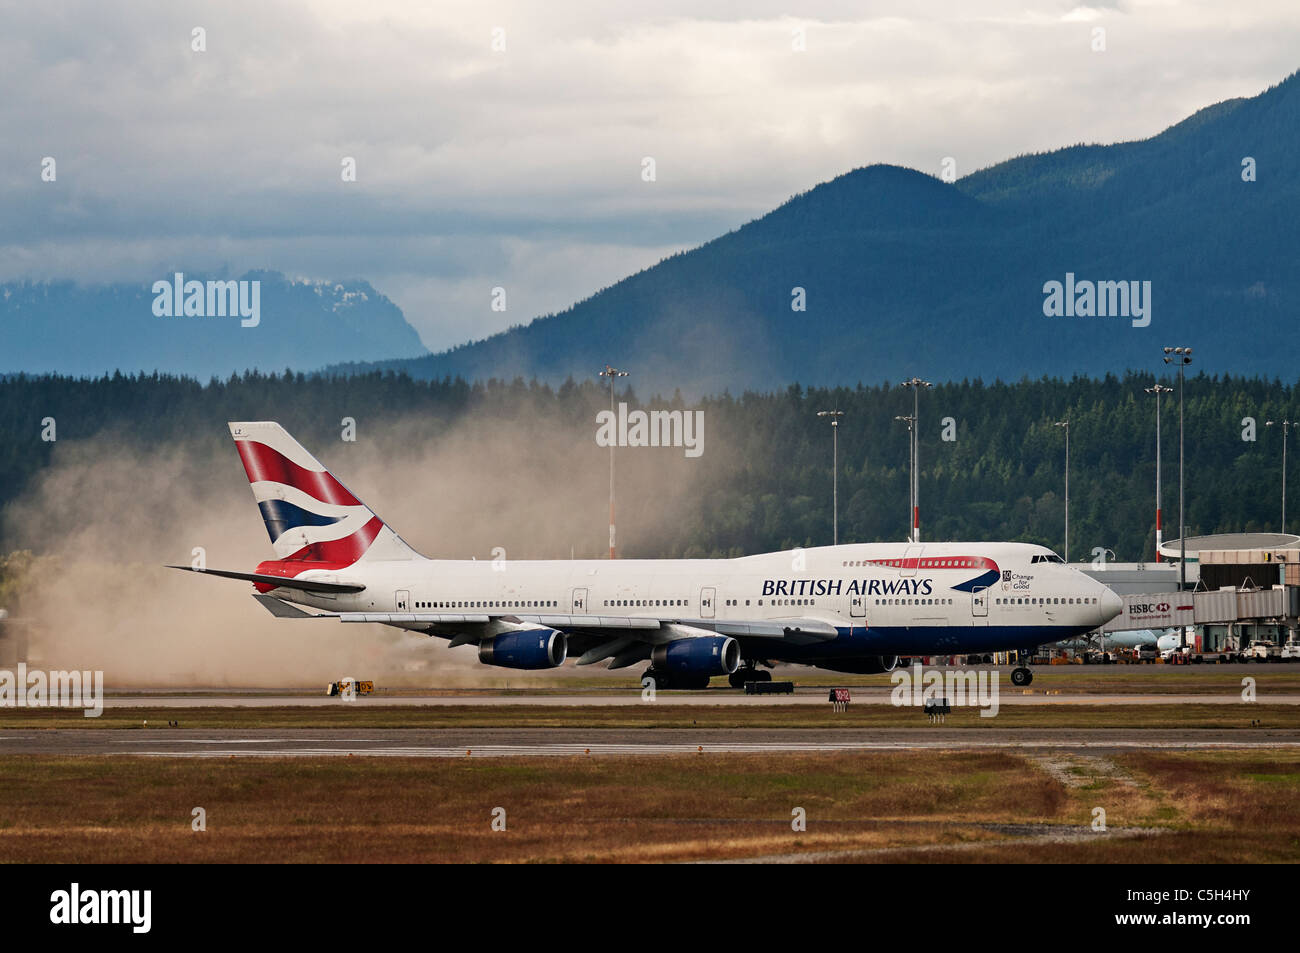 The jet engine thrust from a British Airways Boeing 747 kicks up a small dust storm as it taxies along the tarmac. - Stock Image